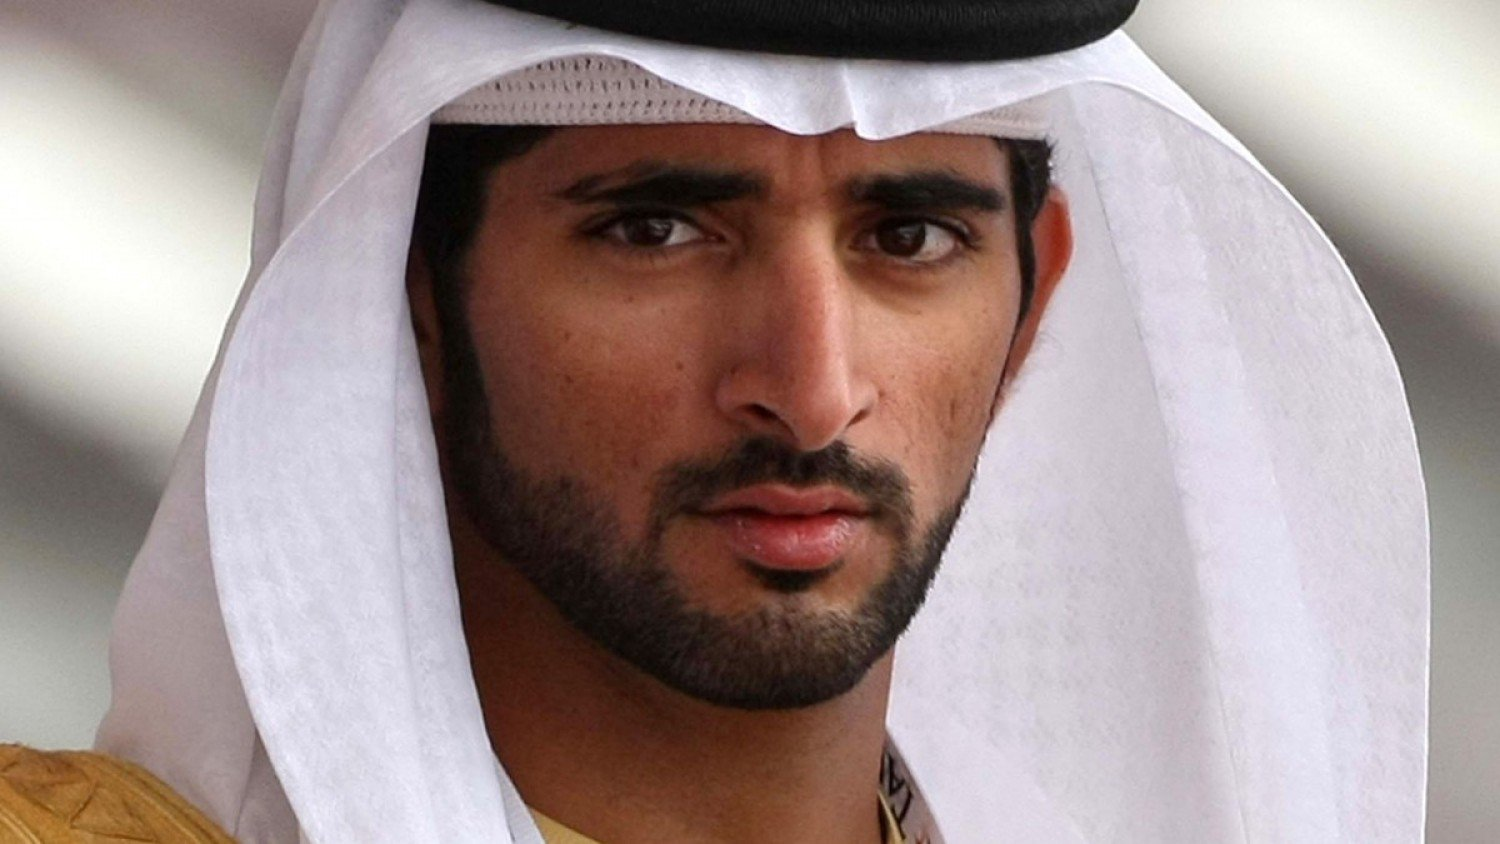 At the age of 33, the son of the ruler of Dubai died